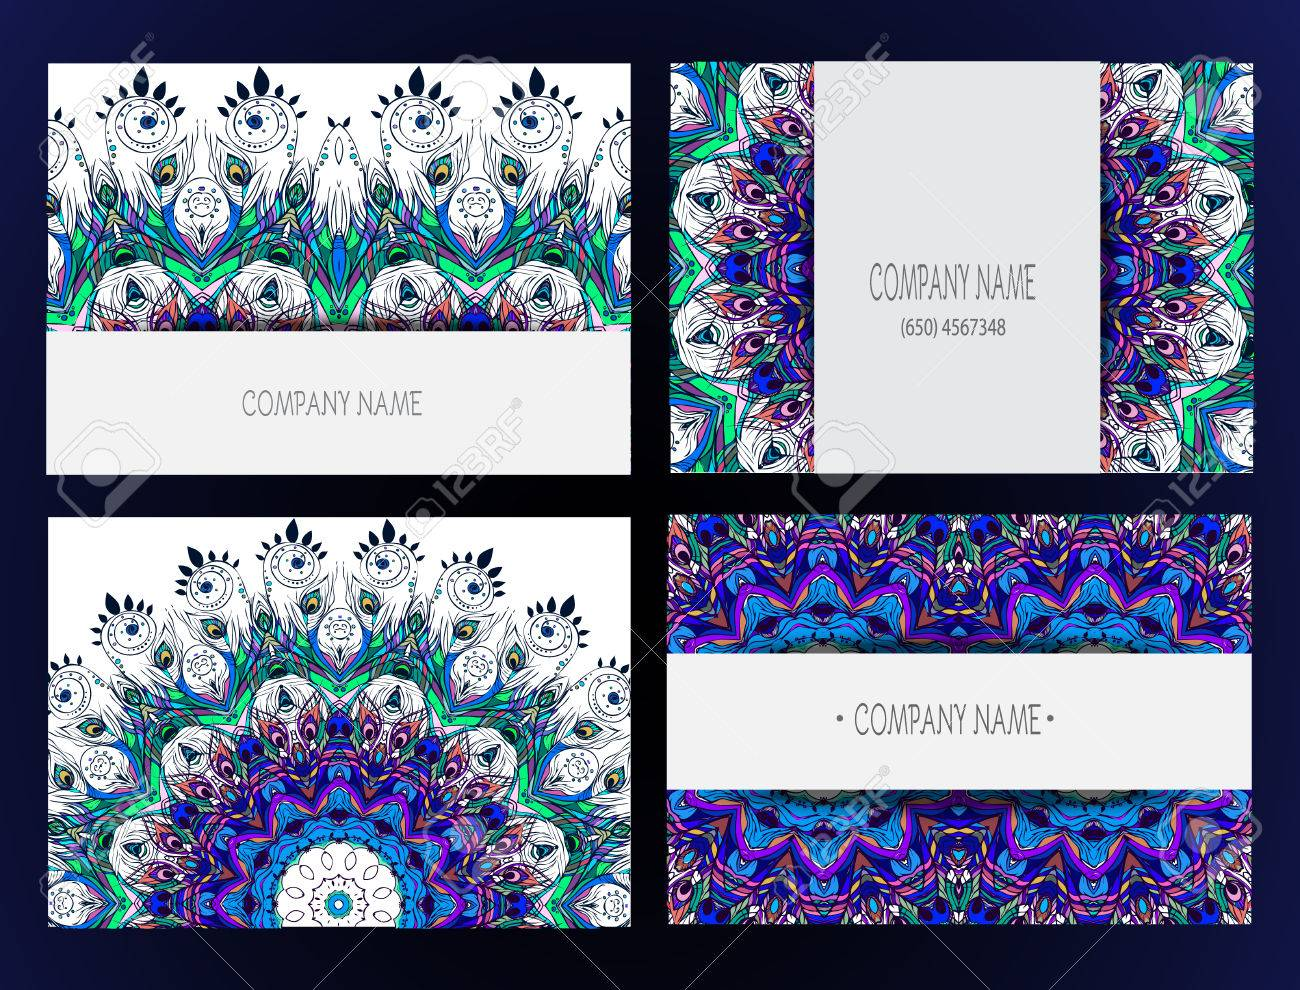 Set Of Business Card And Invitation Templates With Lace